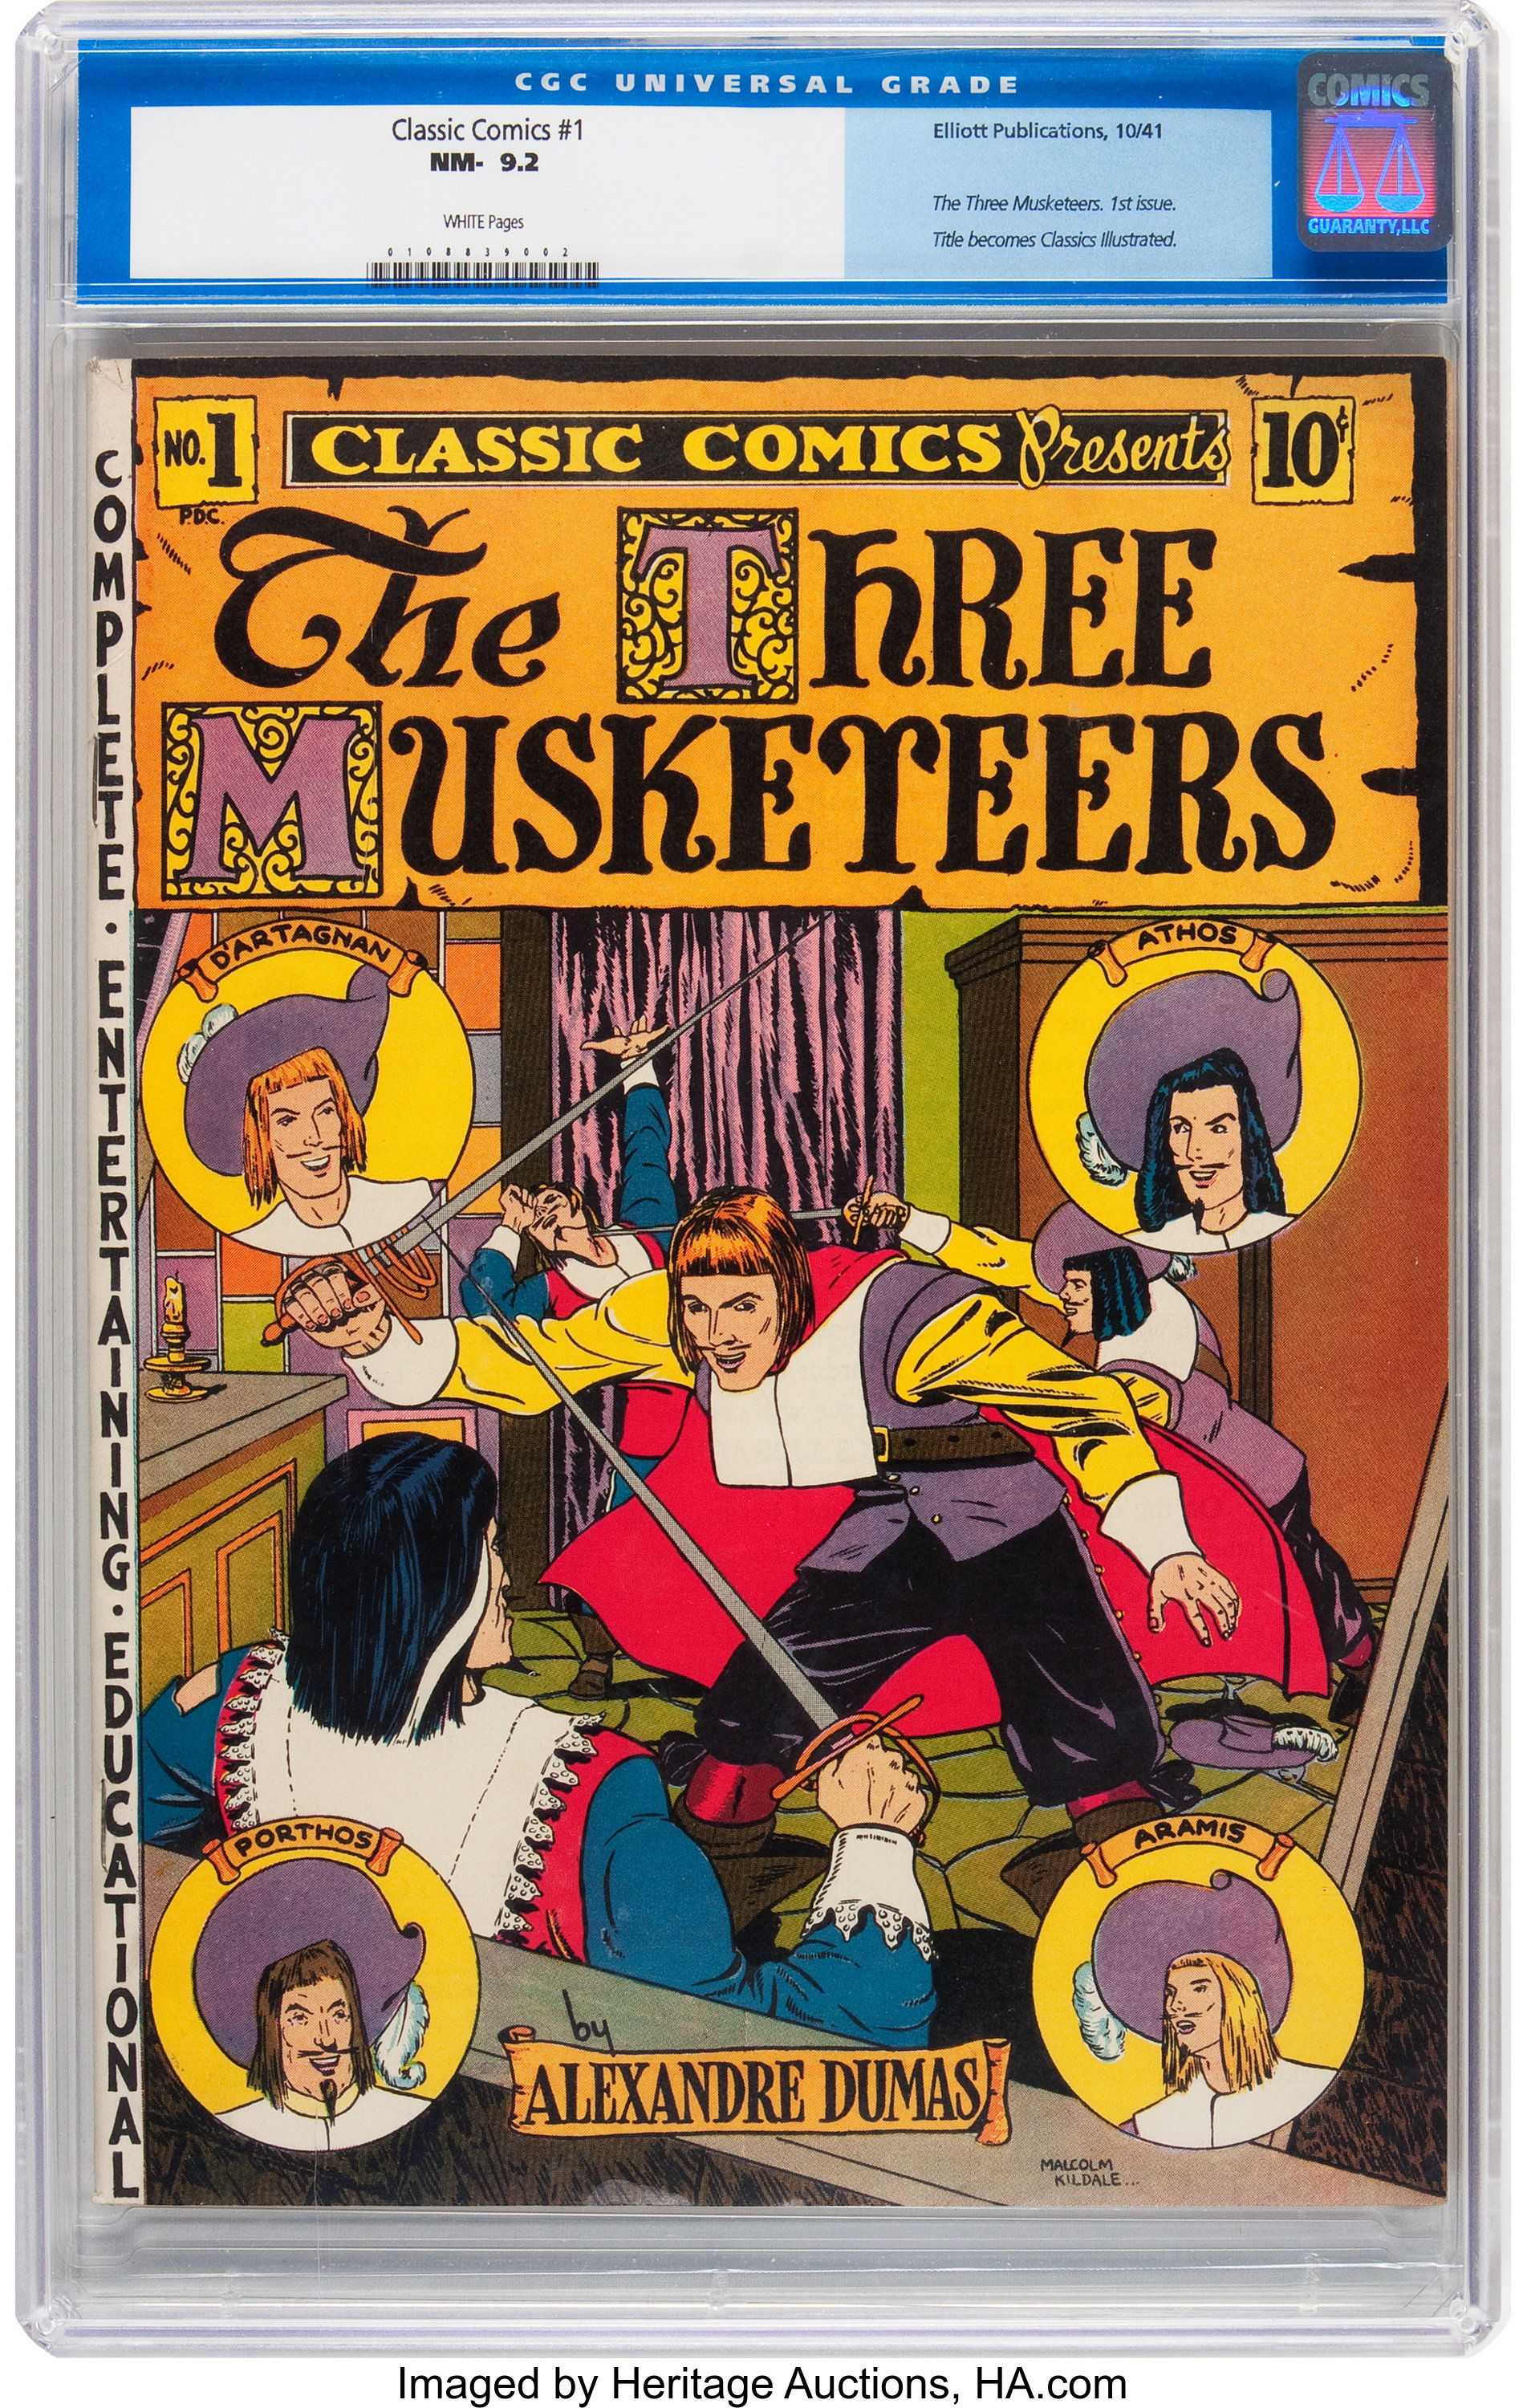 Classic Comics #1 The Three Musketeers (Elliott, 1941) CGC